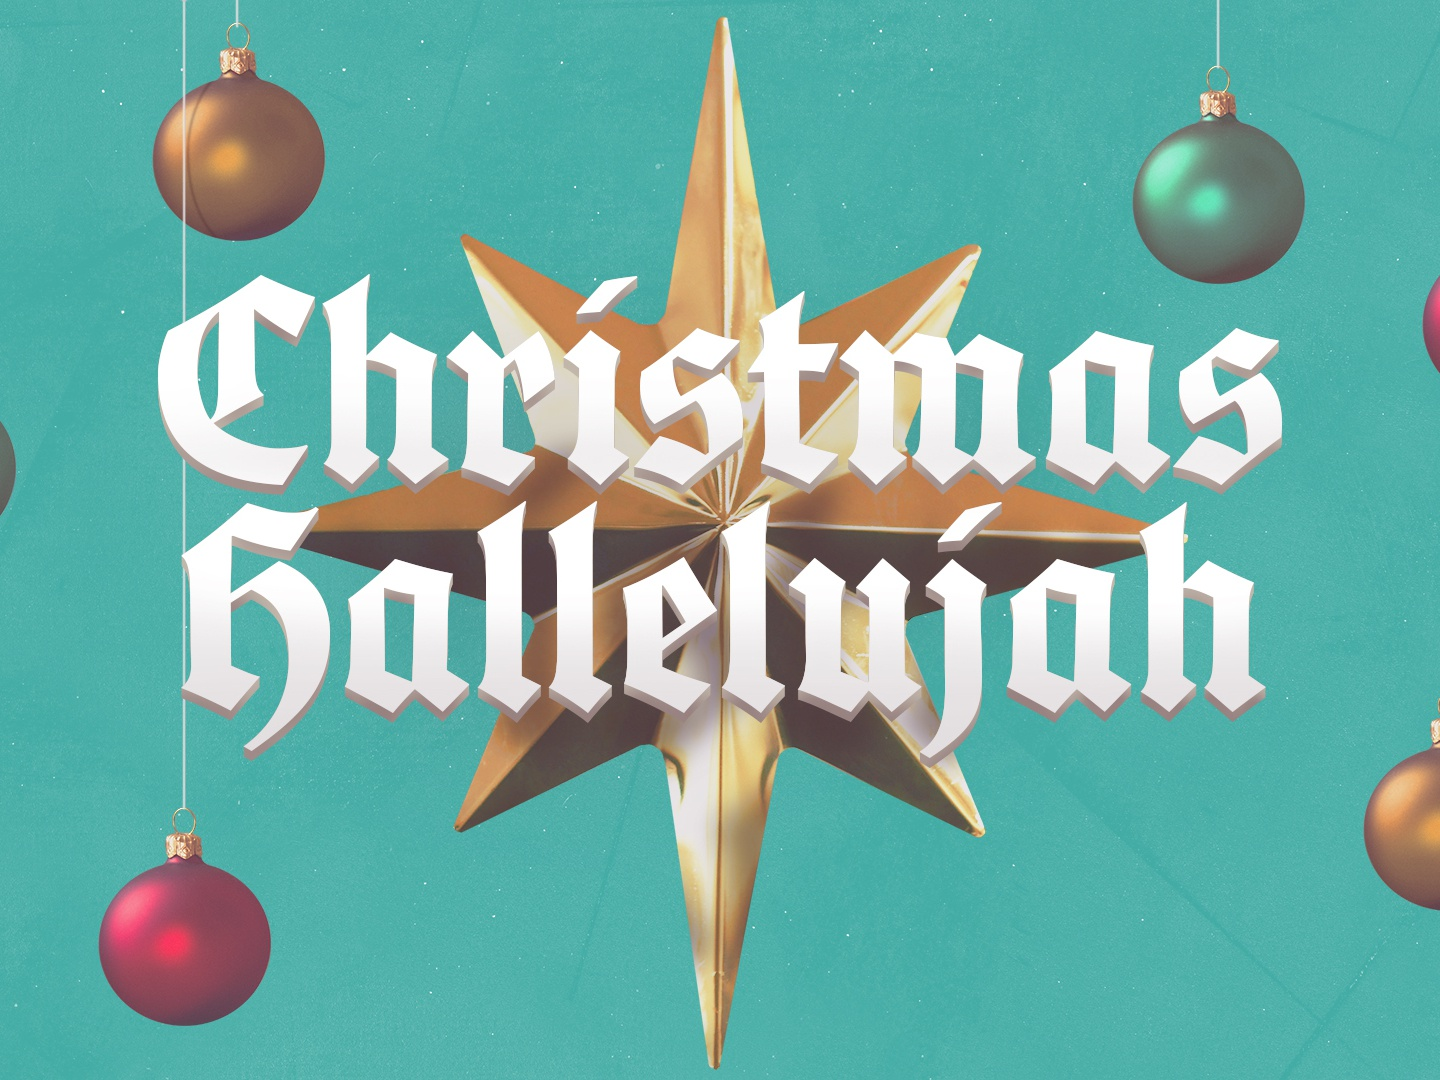 Christmas Hallelujah.Christmas Hallelujah By Jared Tohlen On Dribbble